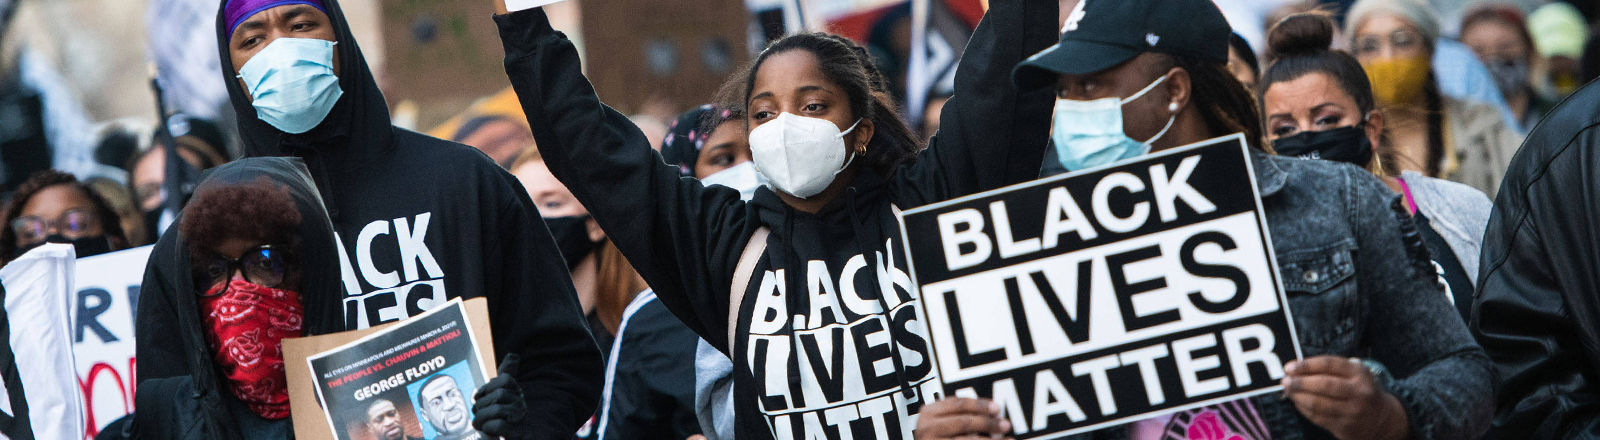 "Demonstrierende der ""Black Lives Matter""-Bewegung in den USA."